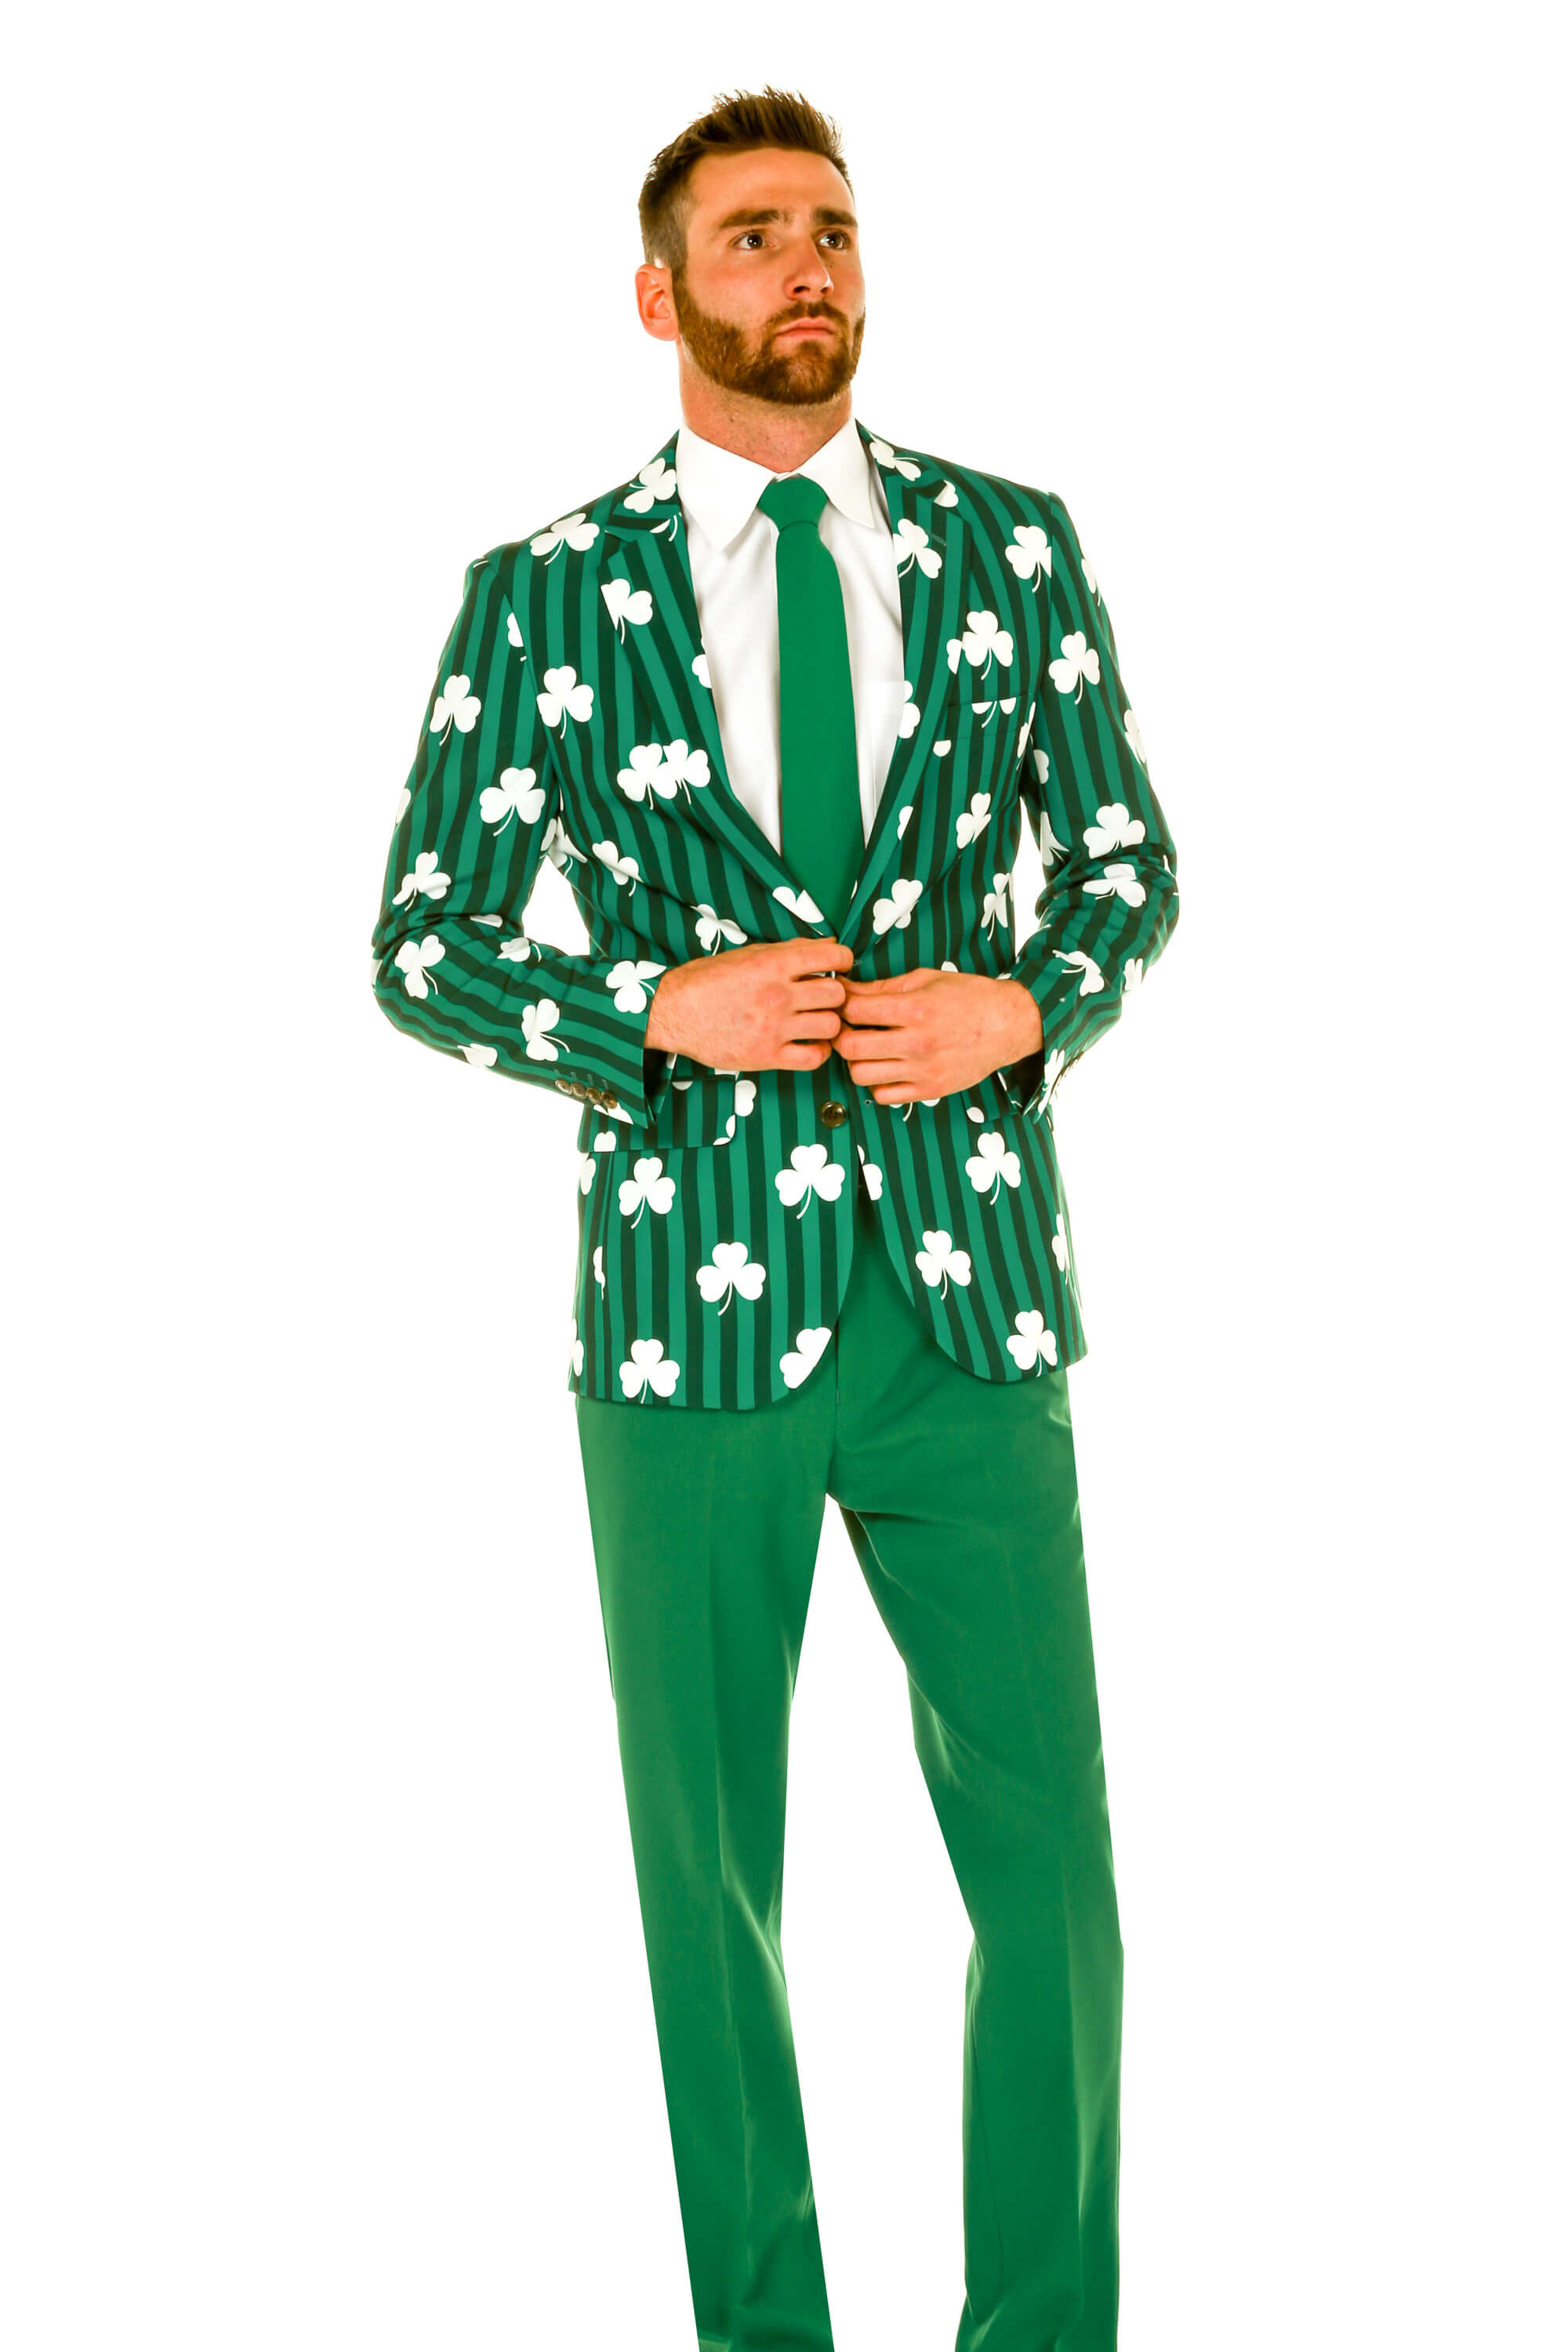 907329943 Men's St. Patrick's Day Suits, Jackets, & Clothing by Shinesty